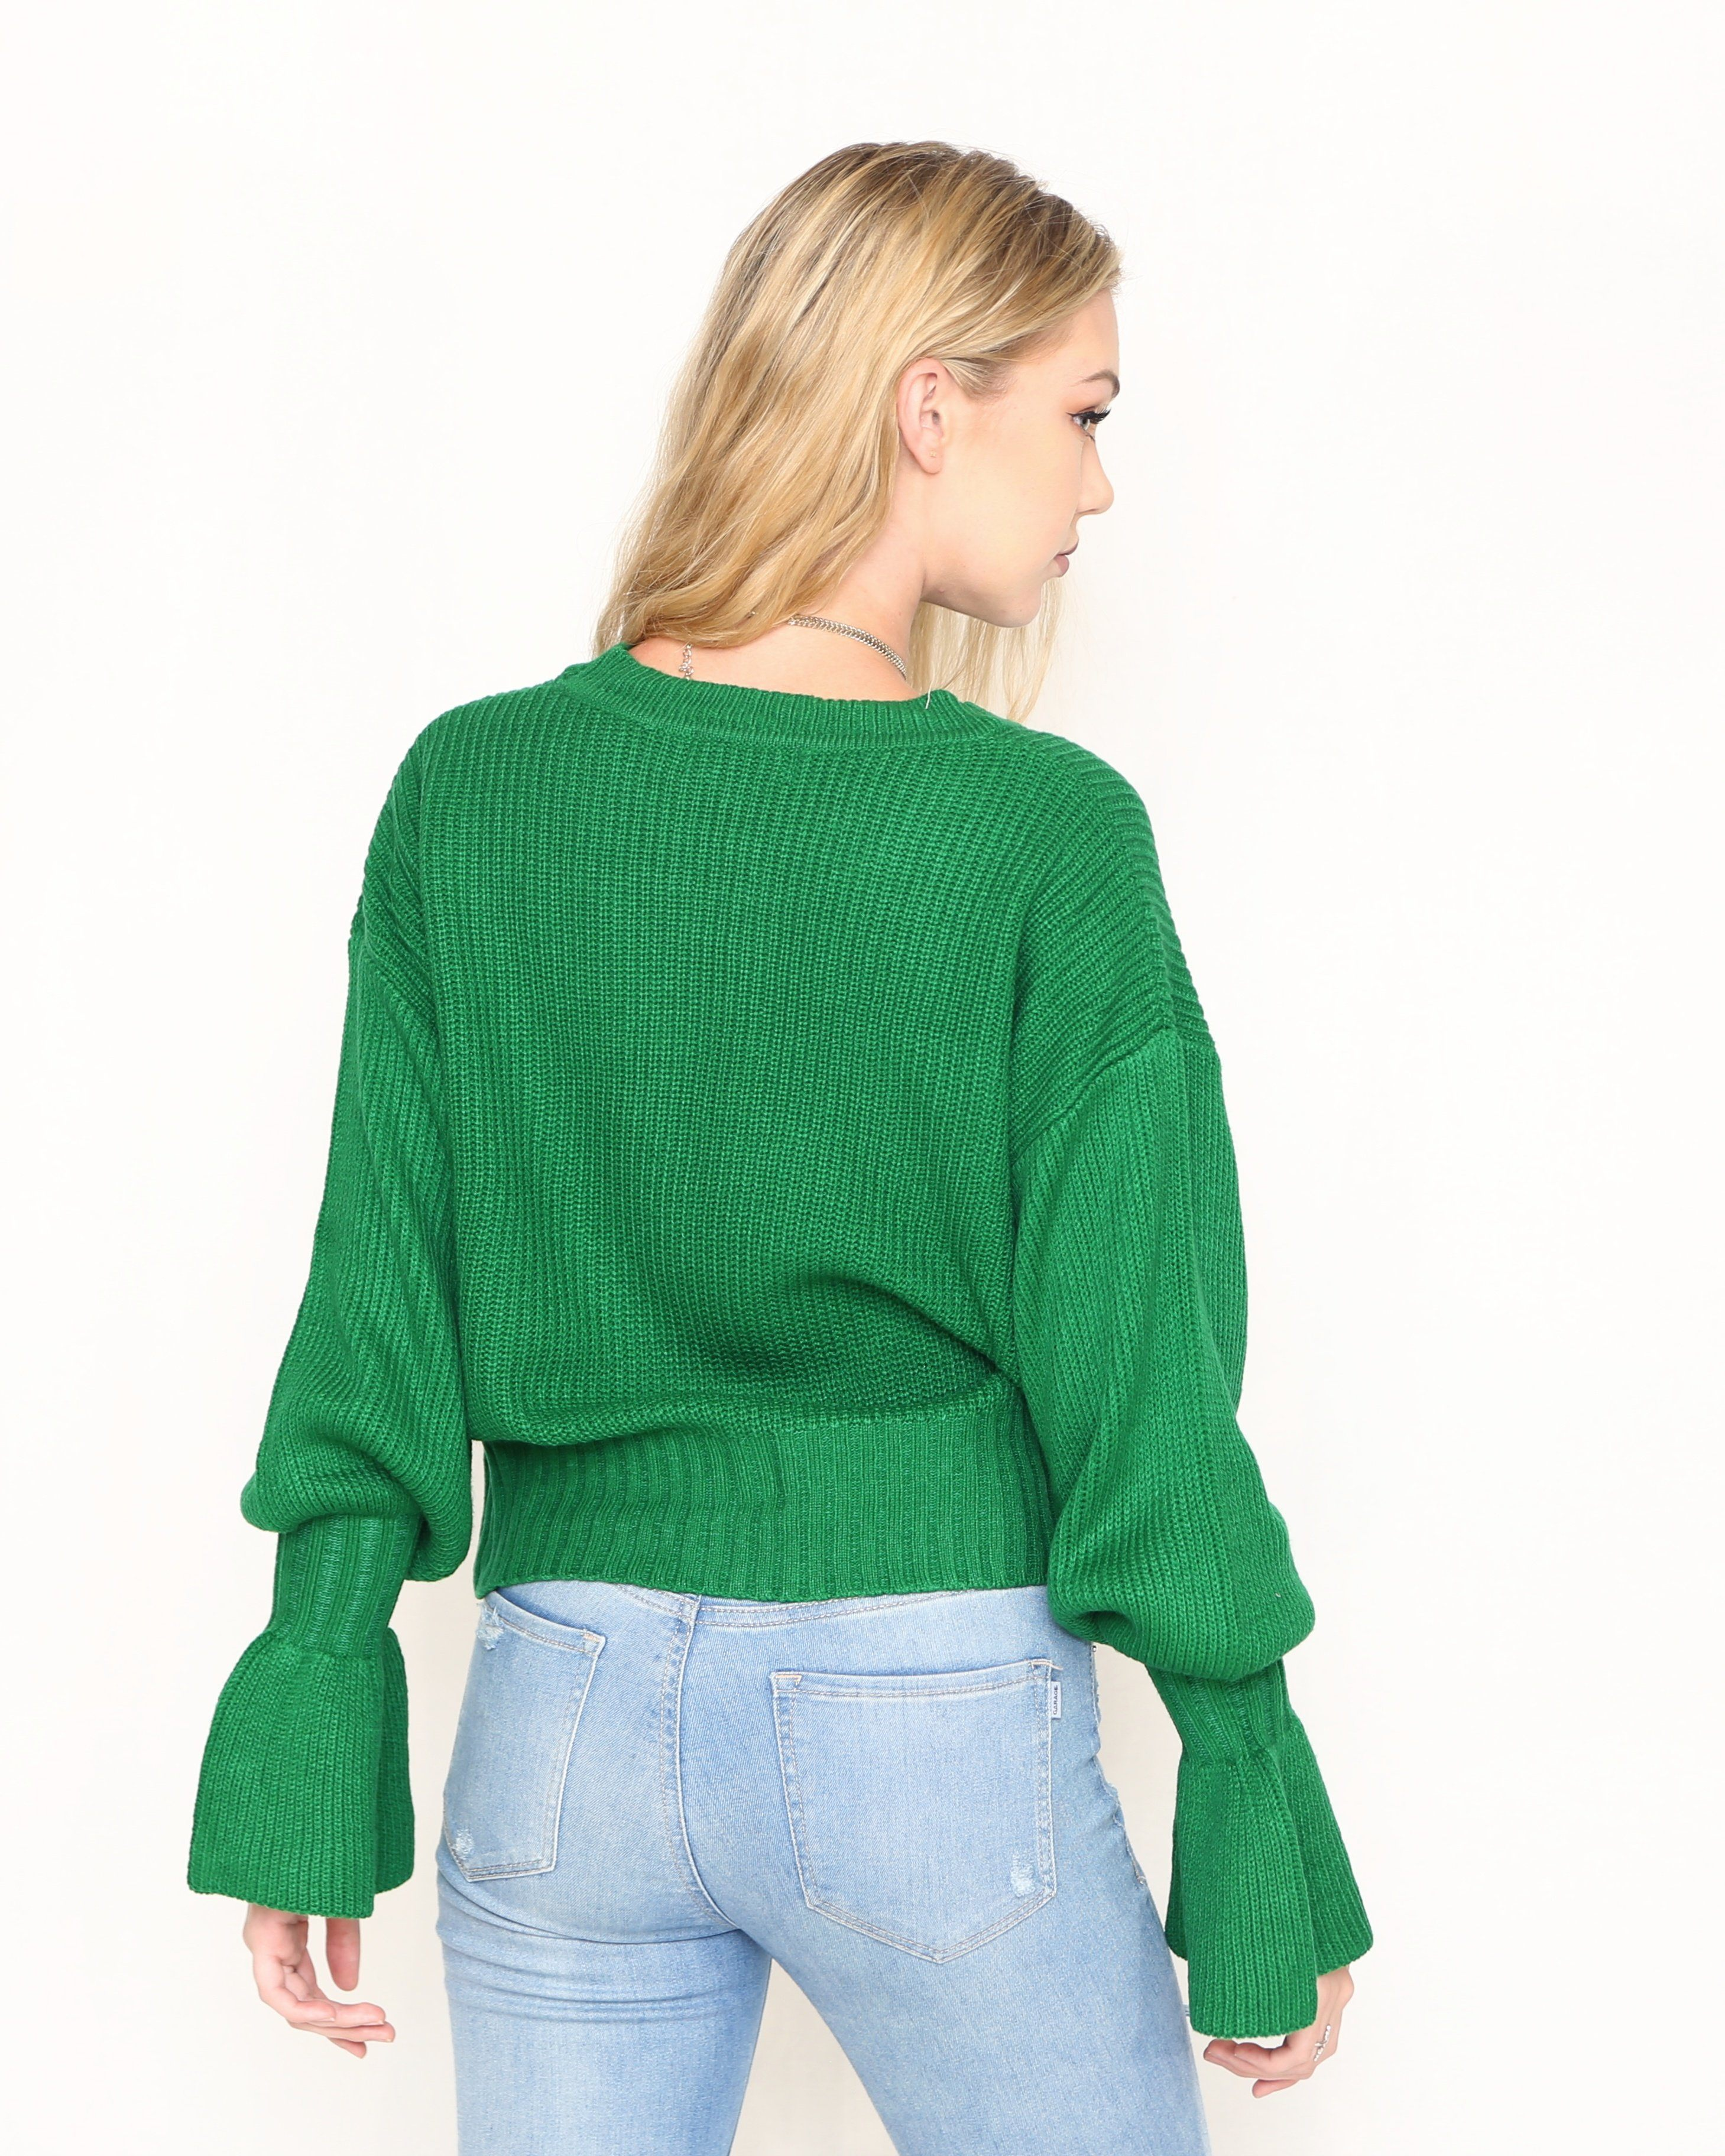 Green Sweater with Bell Sleeves | Bell Sleeves Sweater